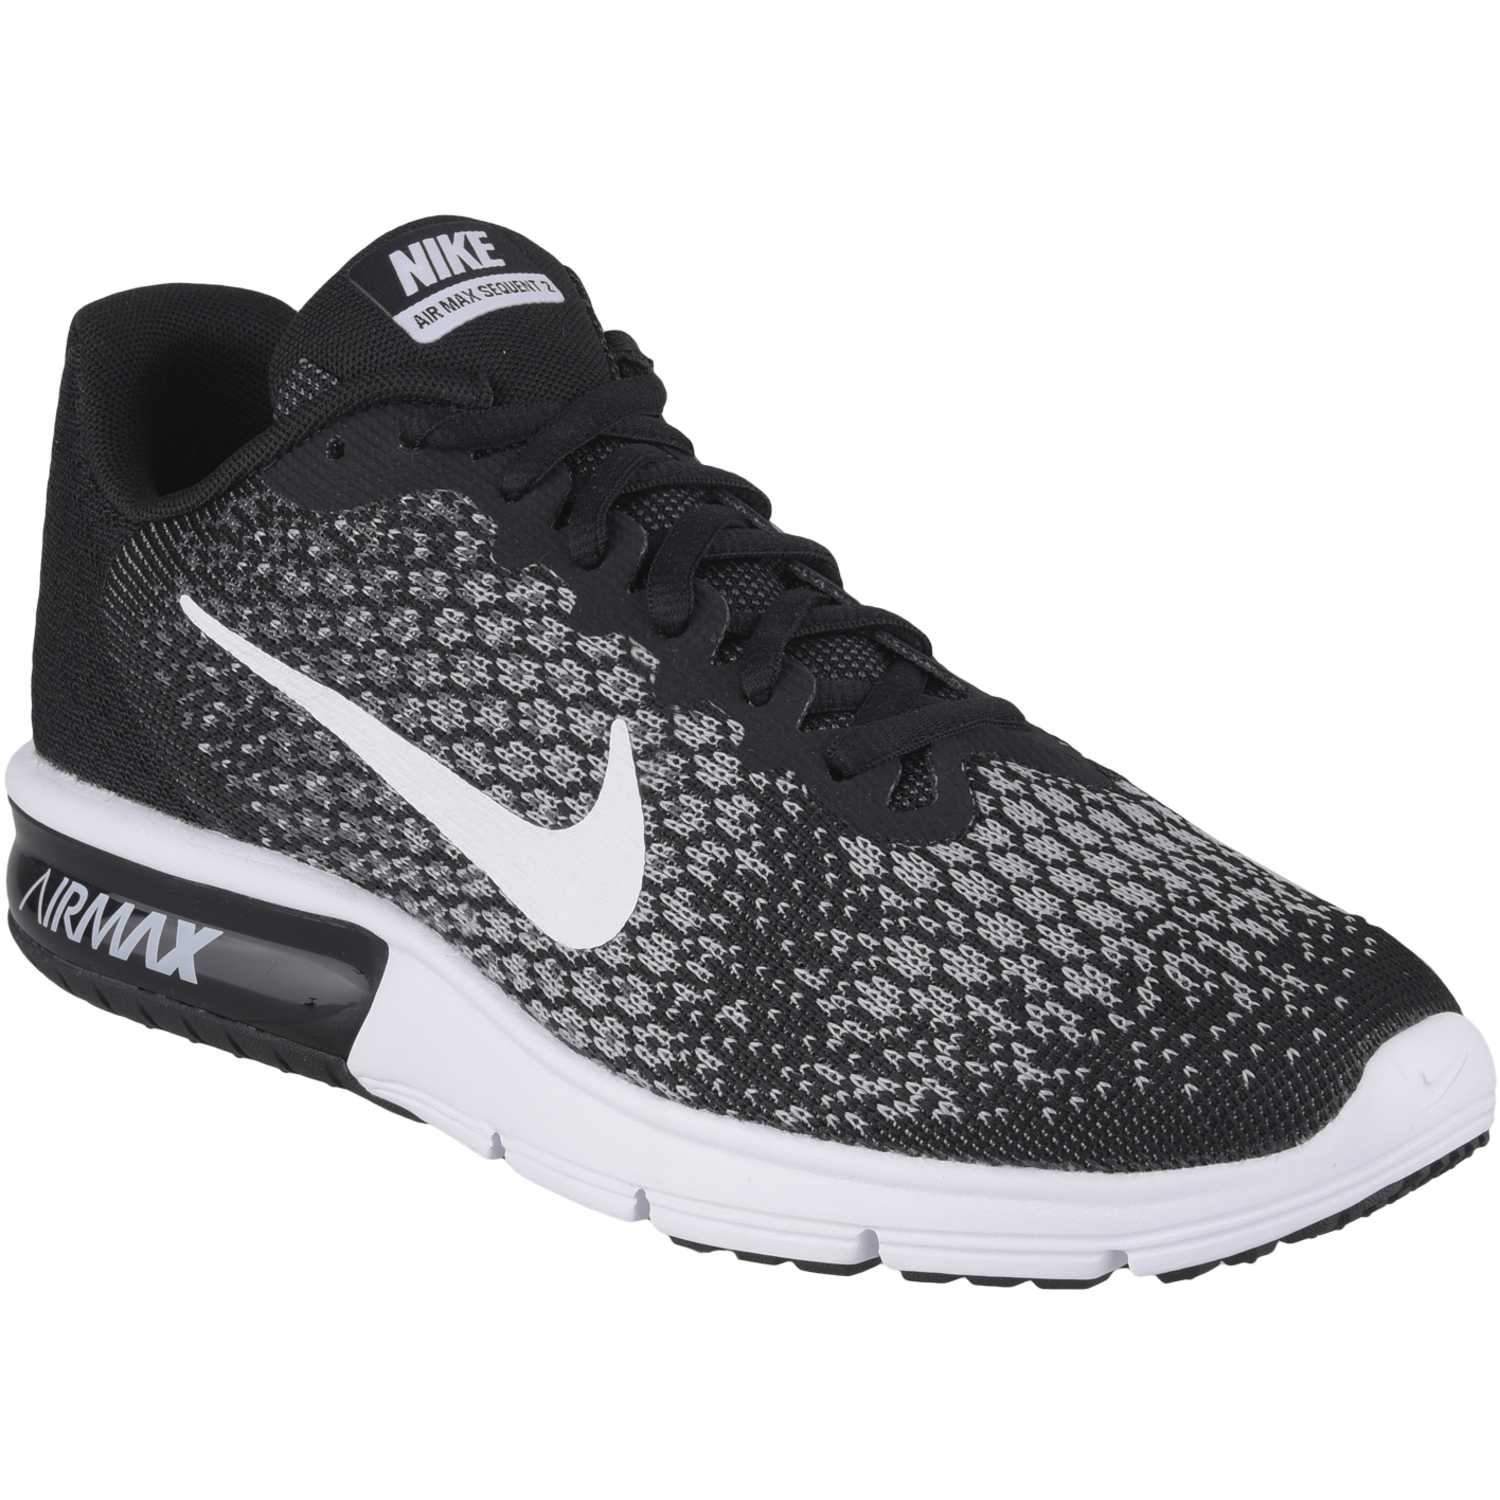 check out 3f87b 66374 Zapatilla de Mujer Nike Negro   blanco wmns air max sequent 2